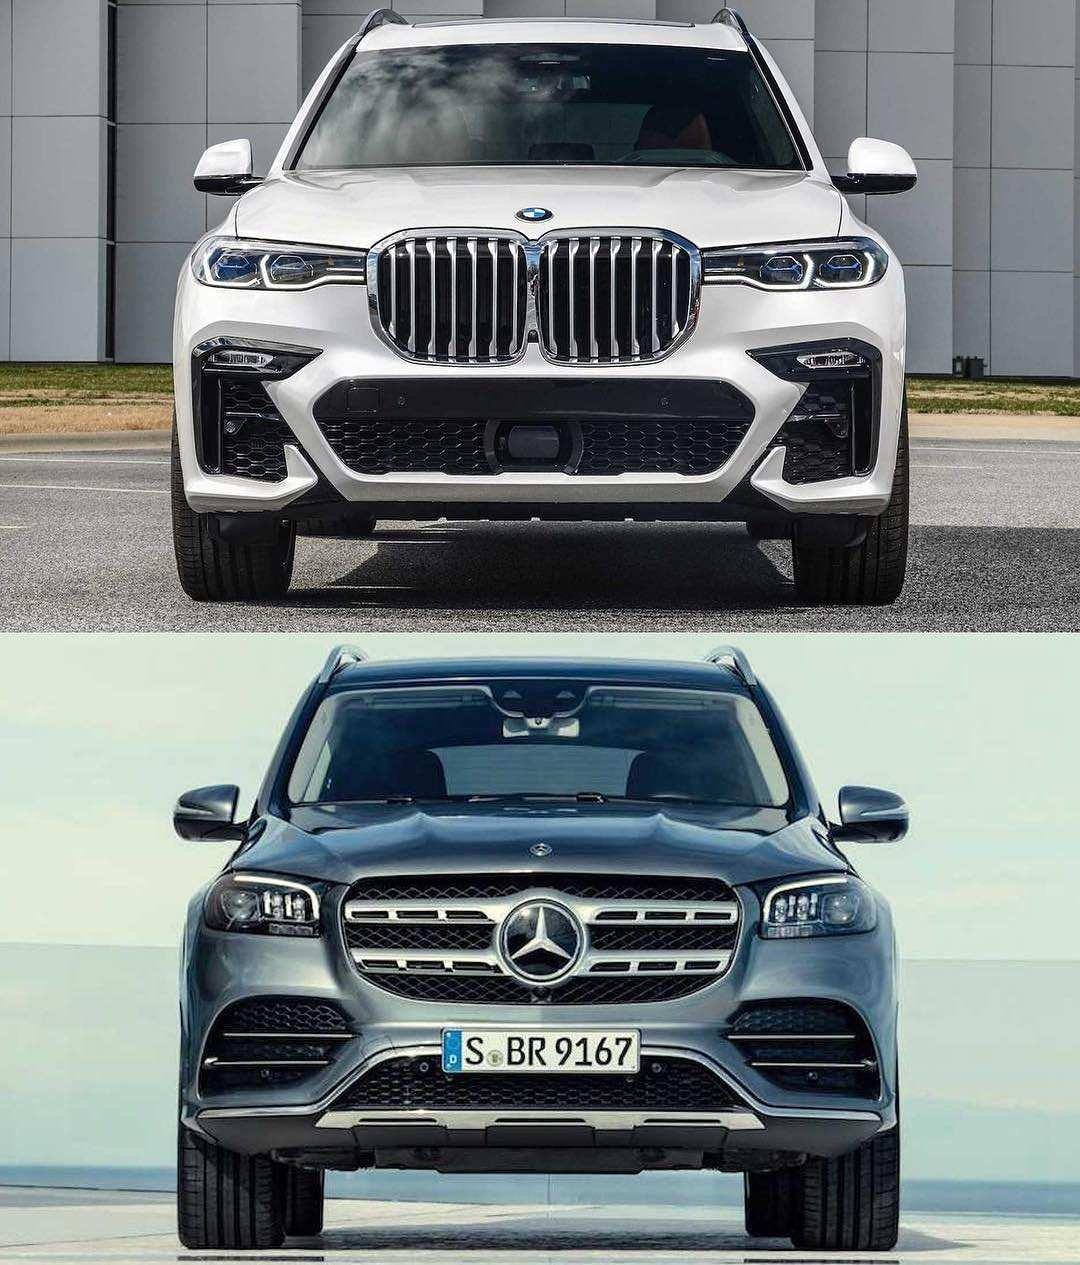 45 The BMW X7 Vs Mercedes Gls 2020 Pricing